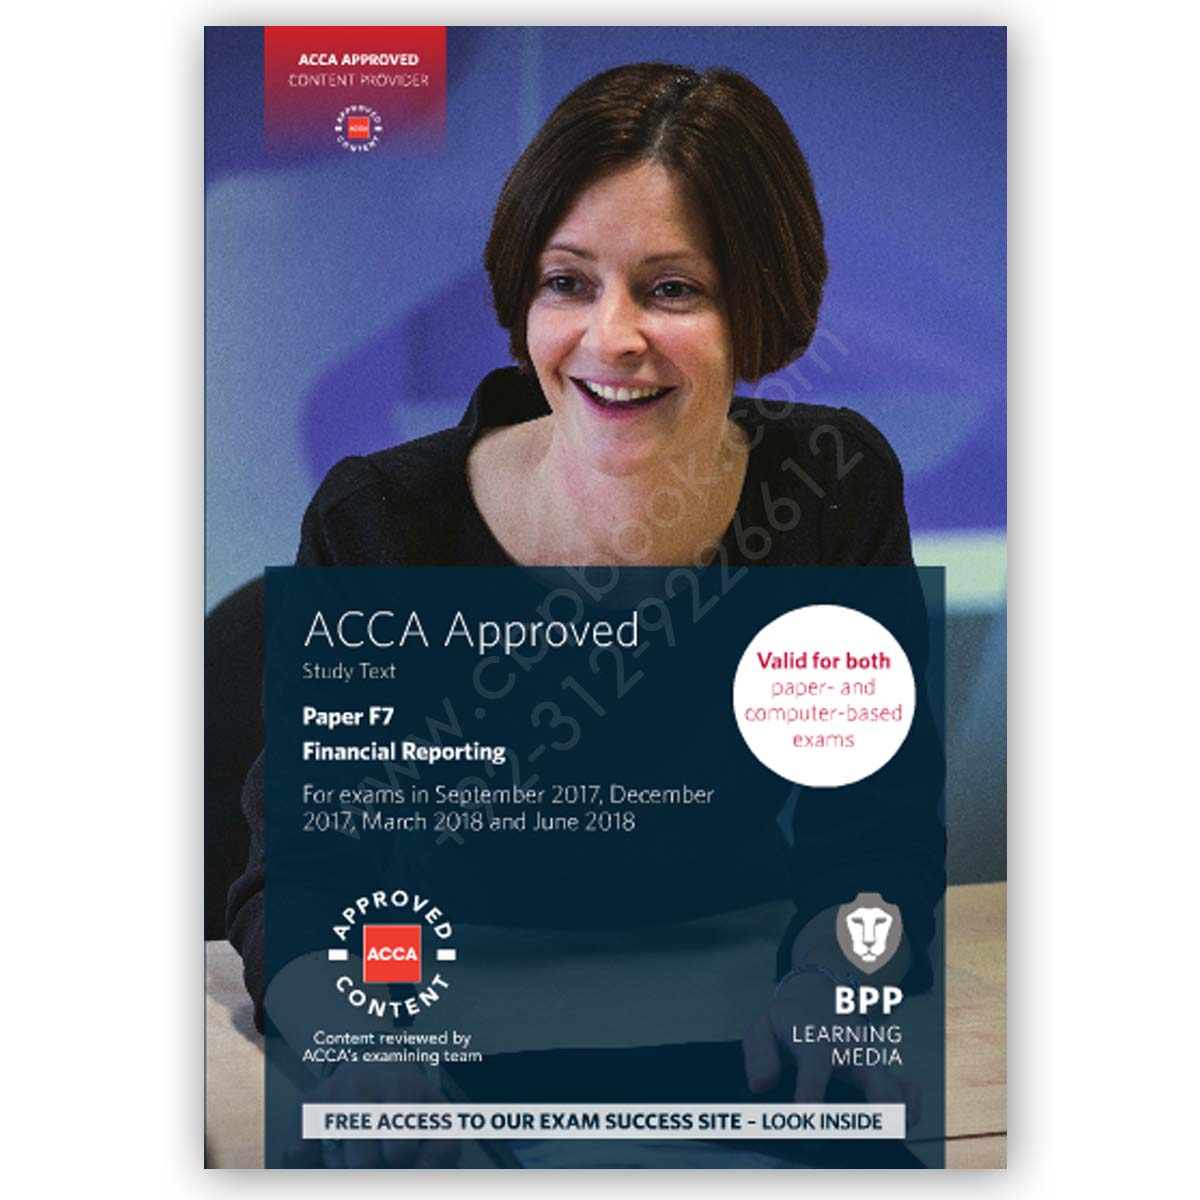 acca f7 financial reporting Acca f7 ( financial reporting ) is the subject of acca applied skill module exam which covers international financial reporting standards , single entity financial .